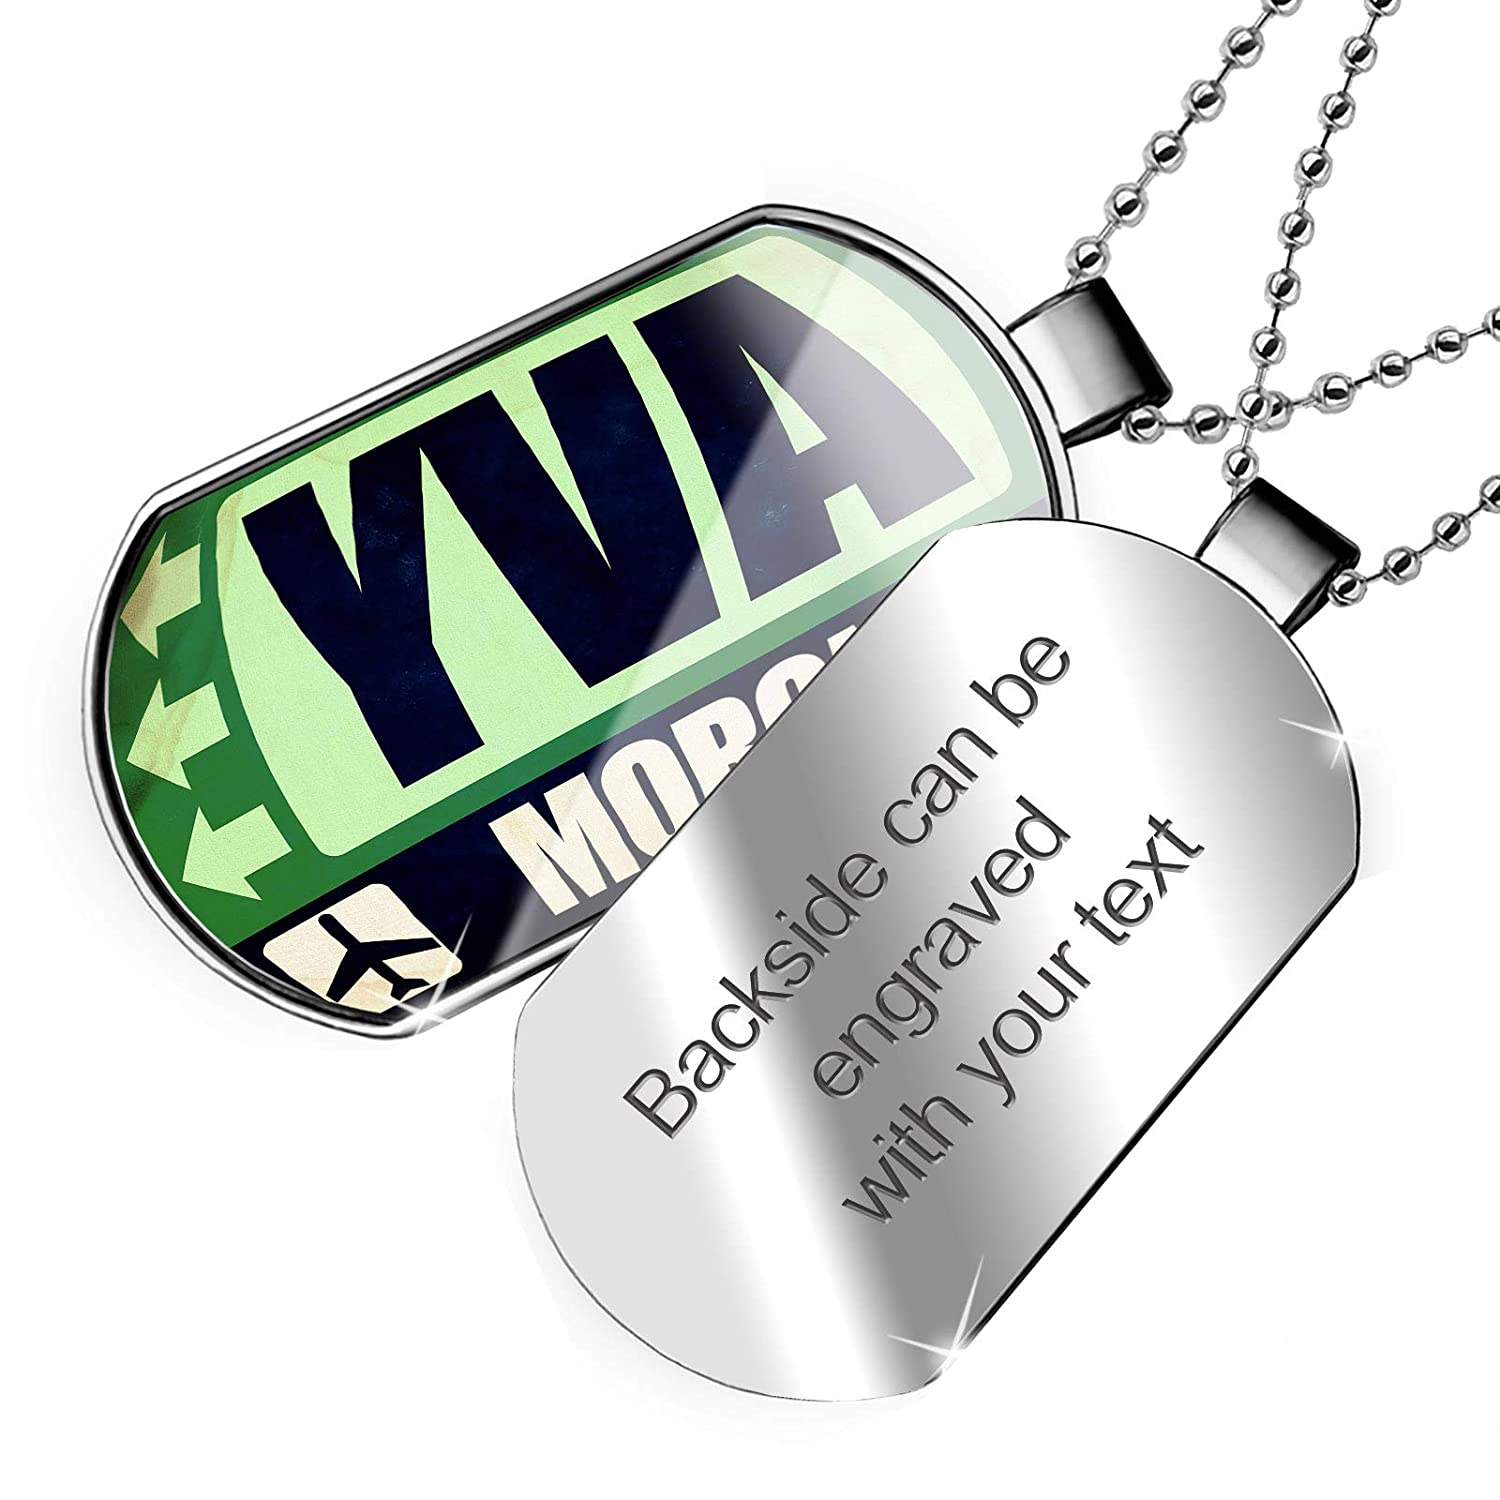 NEONBLOND Personalized Name Engraved Airportcode YVA Moroni Dogtag Necklace